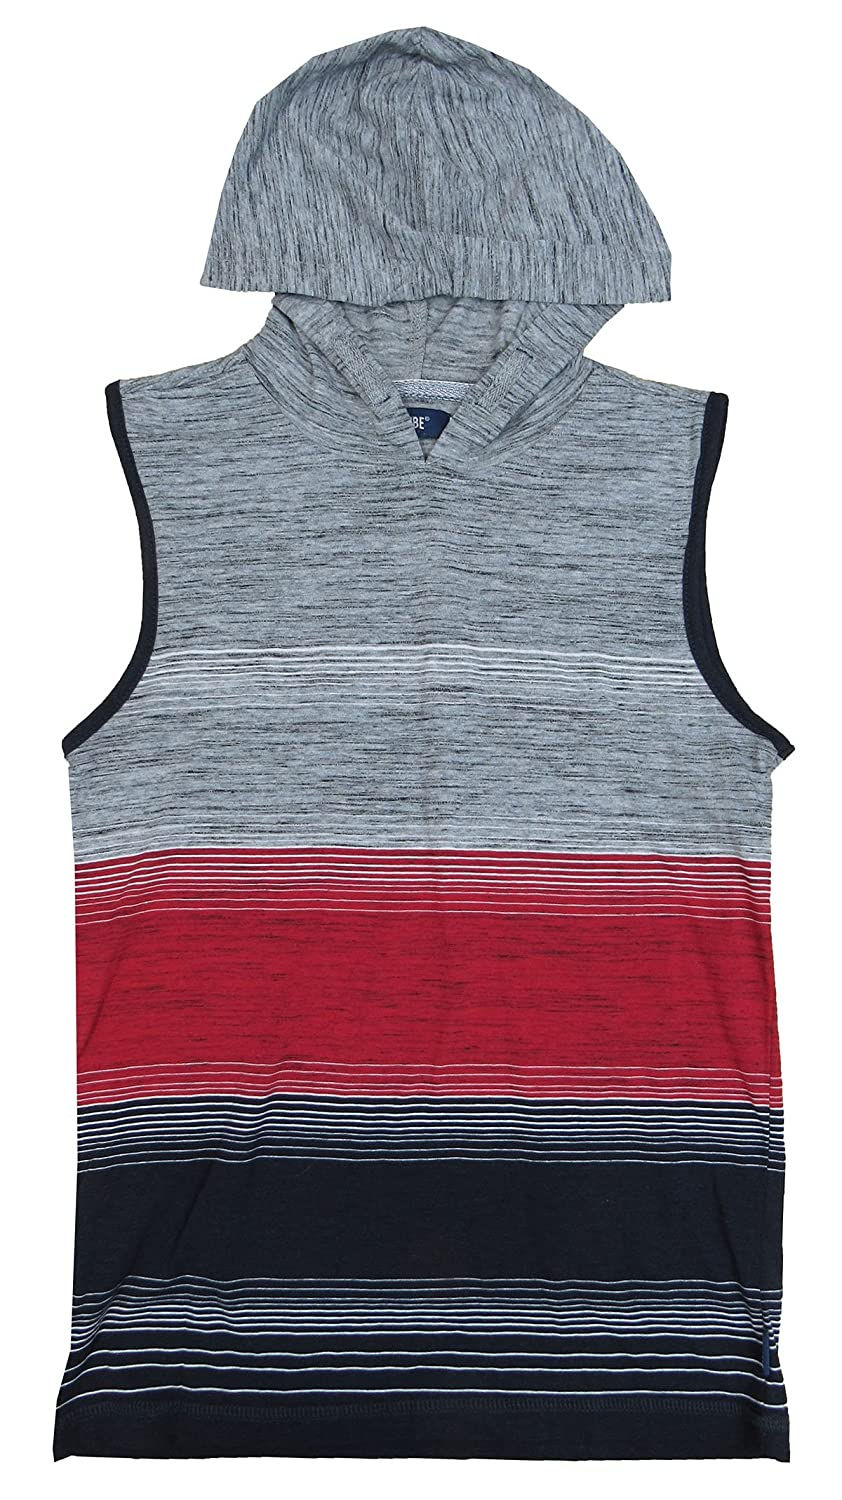 Univibe Big Boys Colorblocked Stripe Hooded Tank Top Medium 8-20